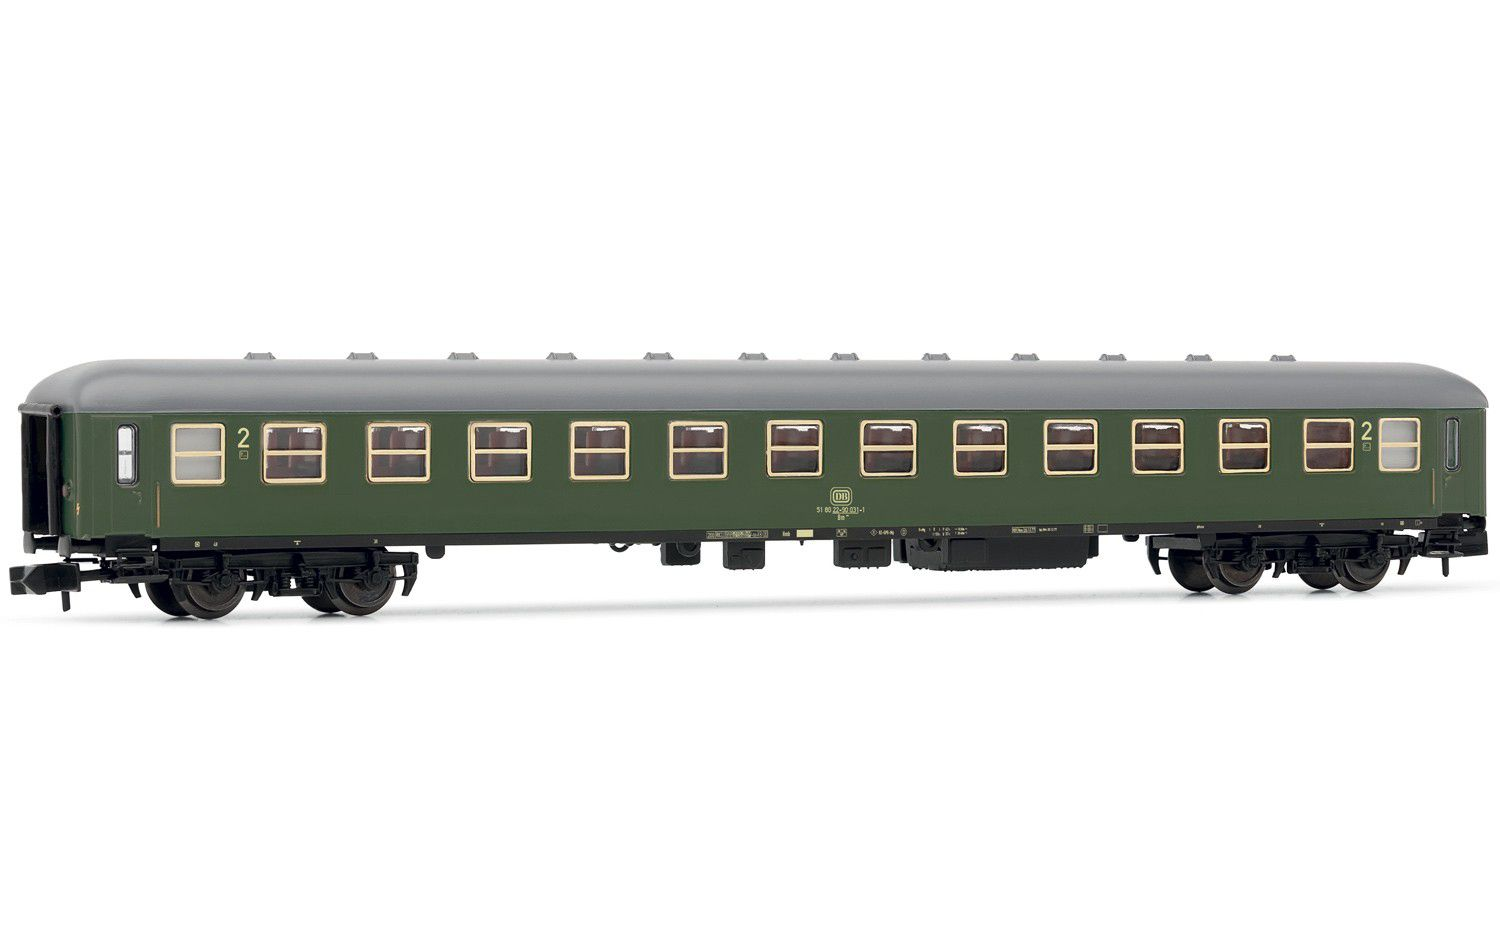 Picture Gallery for Arnold HN4189 2nd class passenger coach, DB, expre